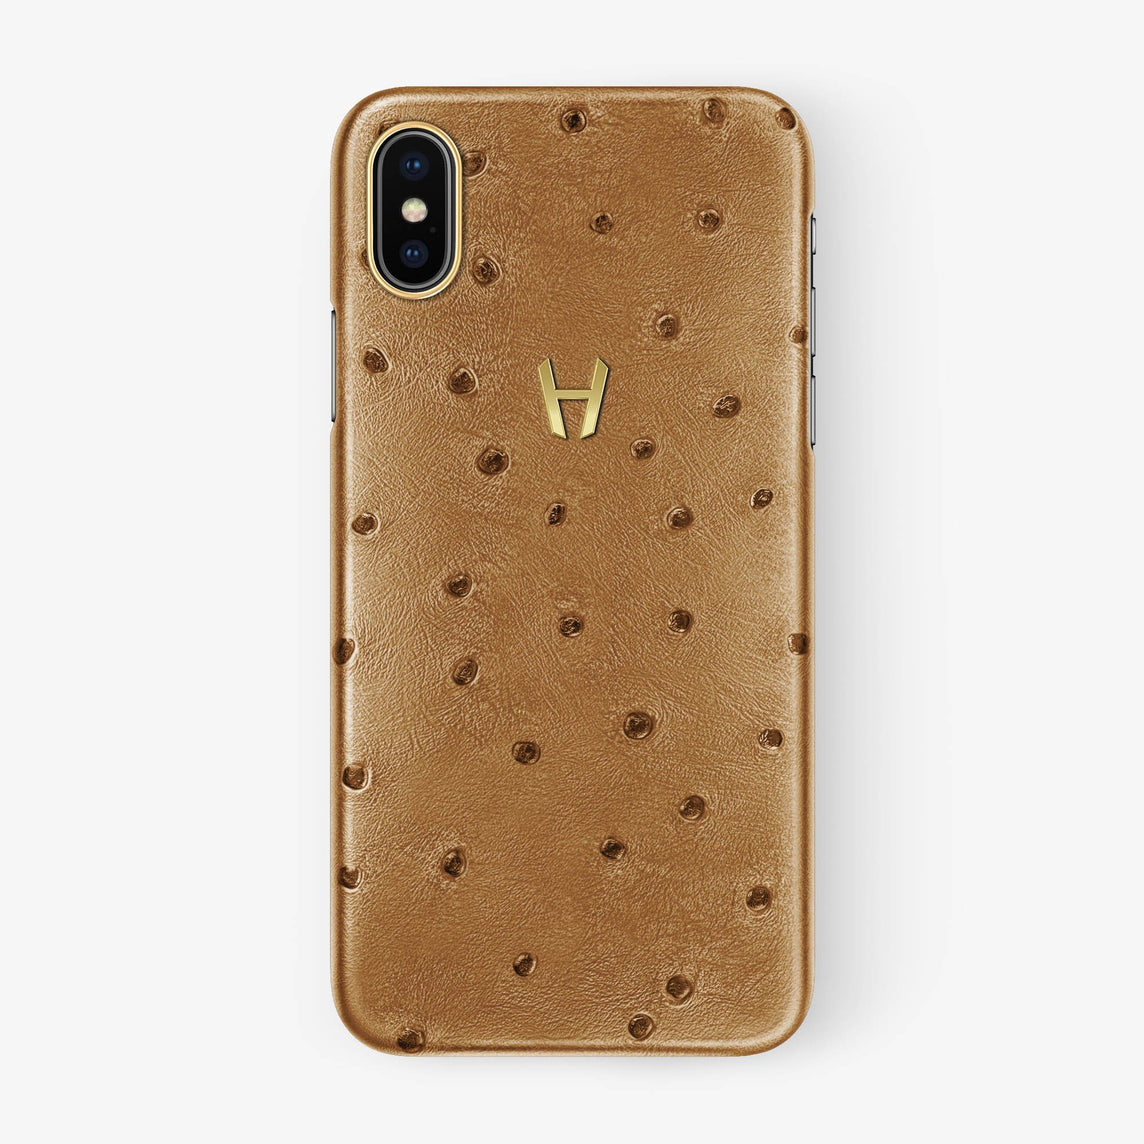 Ostrich Case iPhone X/Xs | Chestnut - Yellow Gold withouth-personalization